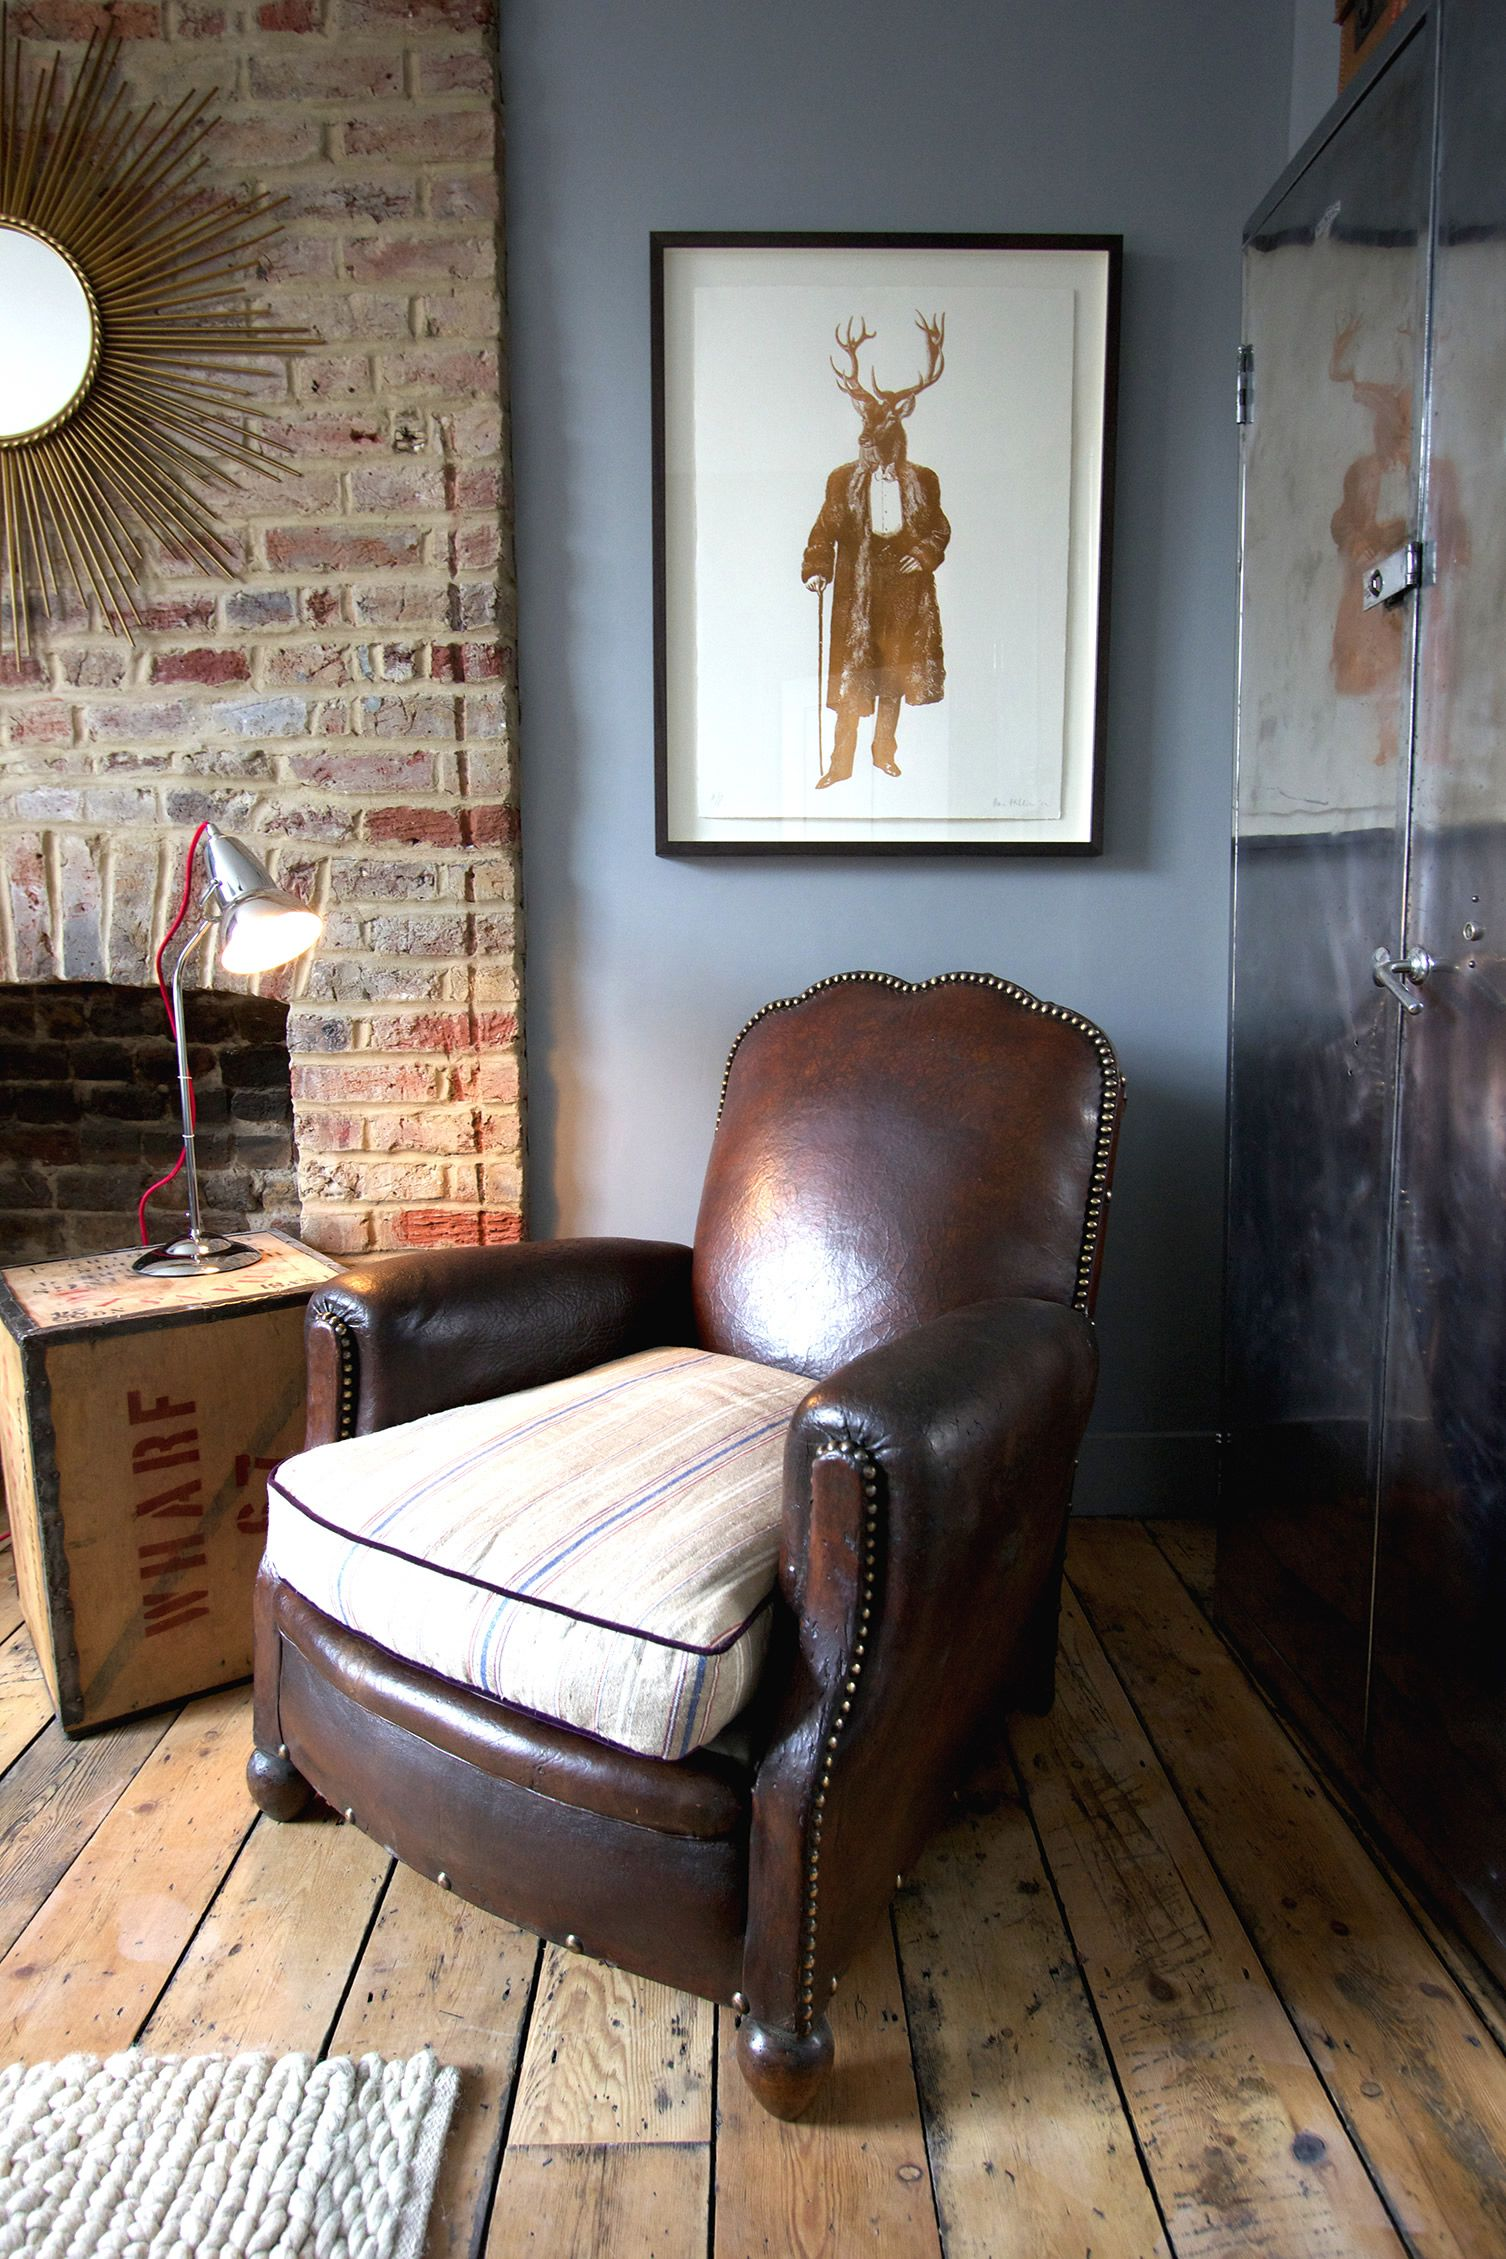 Thereus a hip new Residence shaking things up in Londonus Pimlico